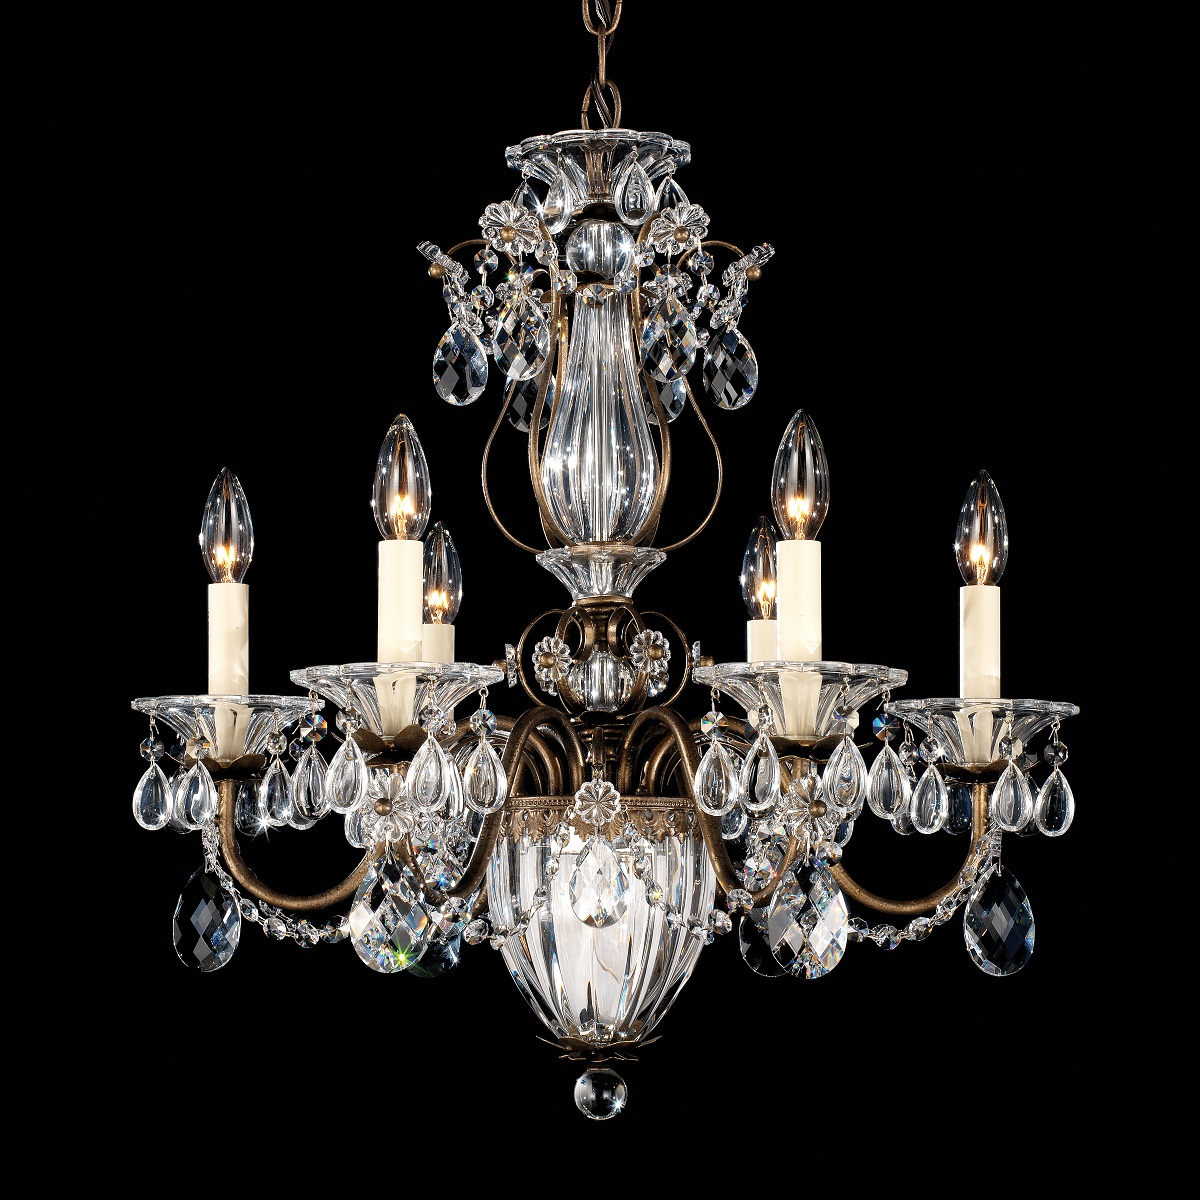 Schonbek Bagatelle Modern Crystal Chandelier Brooklyn,New York - Accentuations Brand